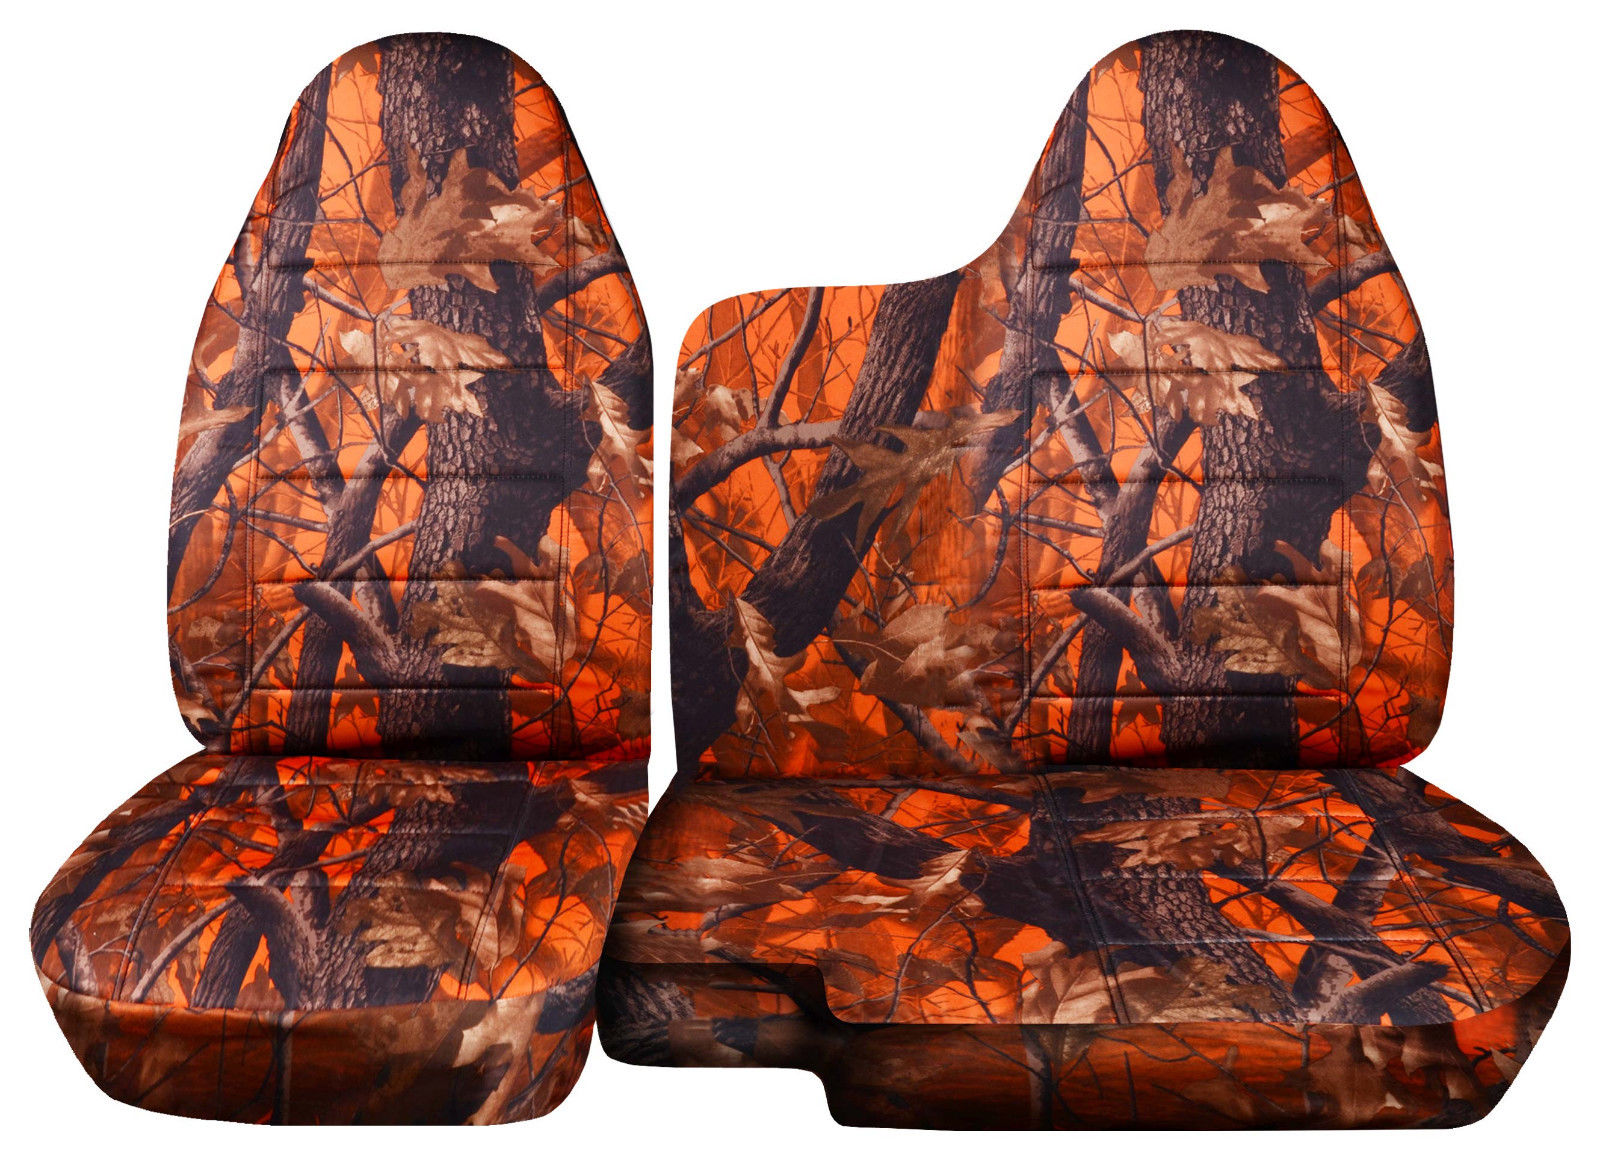 Fits 2004 to 2012 Chevrolet Colorado 60 40 Seat Covers Camouflage Seat Covers with Armrest Option No Armrest, Digital Ranger Camouflage